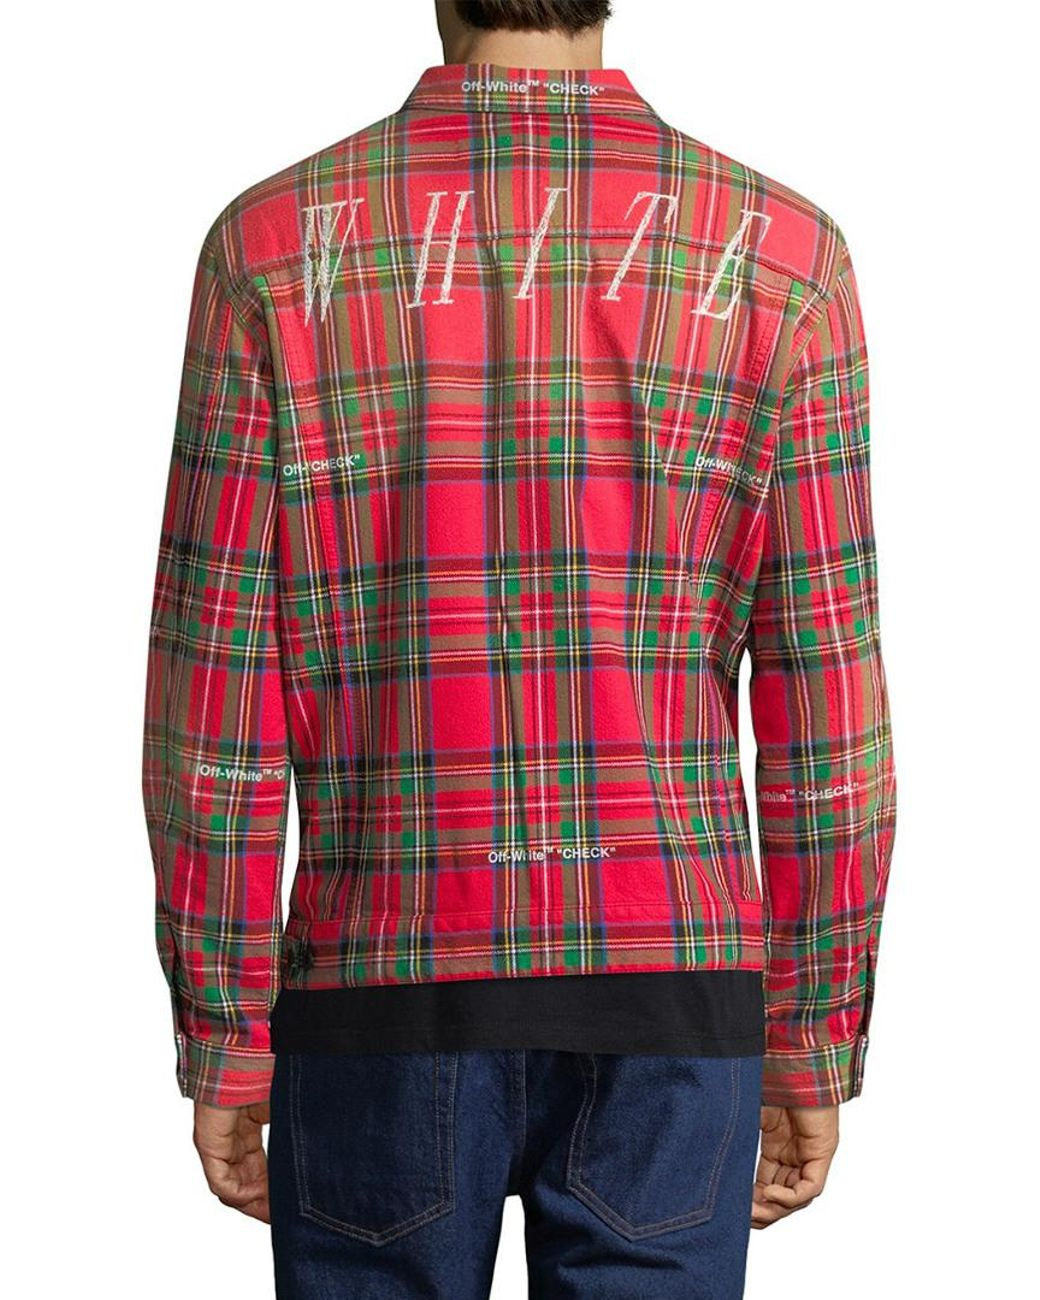 9fa3ce2e8c43 Off-White c o Virgil Abloh Off-white Tartan Print Trucker Jacket in Red for  Men - Save 26% - Lyst